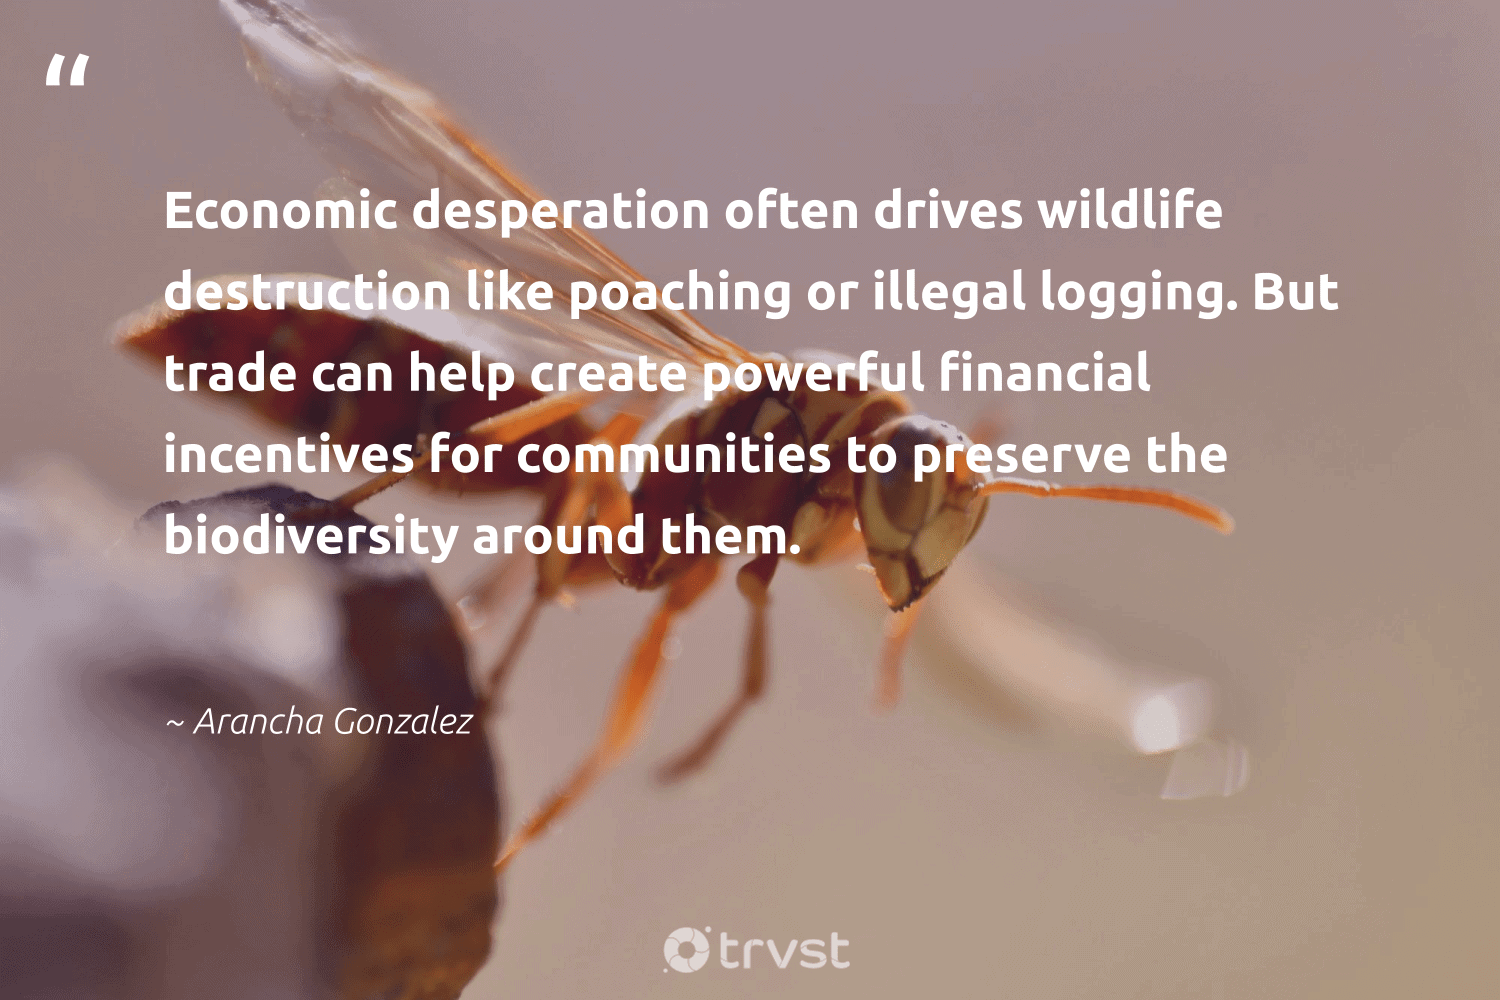 """""""Economic desperation often drives wildlife destruction like poaching or illegal logging. But trade can help create powerful financial incentives for communities to preserve the biodiversity around them.""""  - Arancha Gonzalez #trvst #quotes #biodiversity #wildlife #communities #nature #insects #wildlifephotography #takeaction #conservation #parrot #cheetah"""